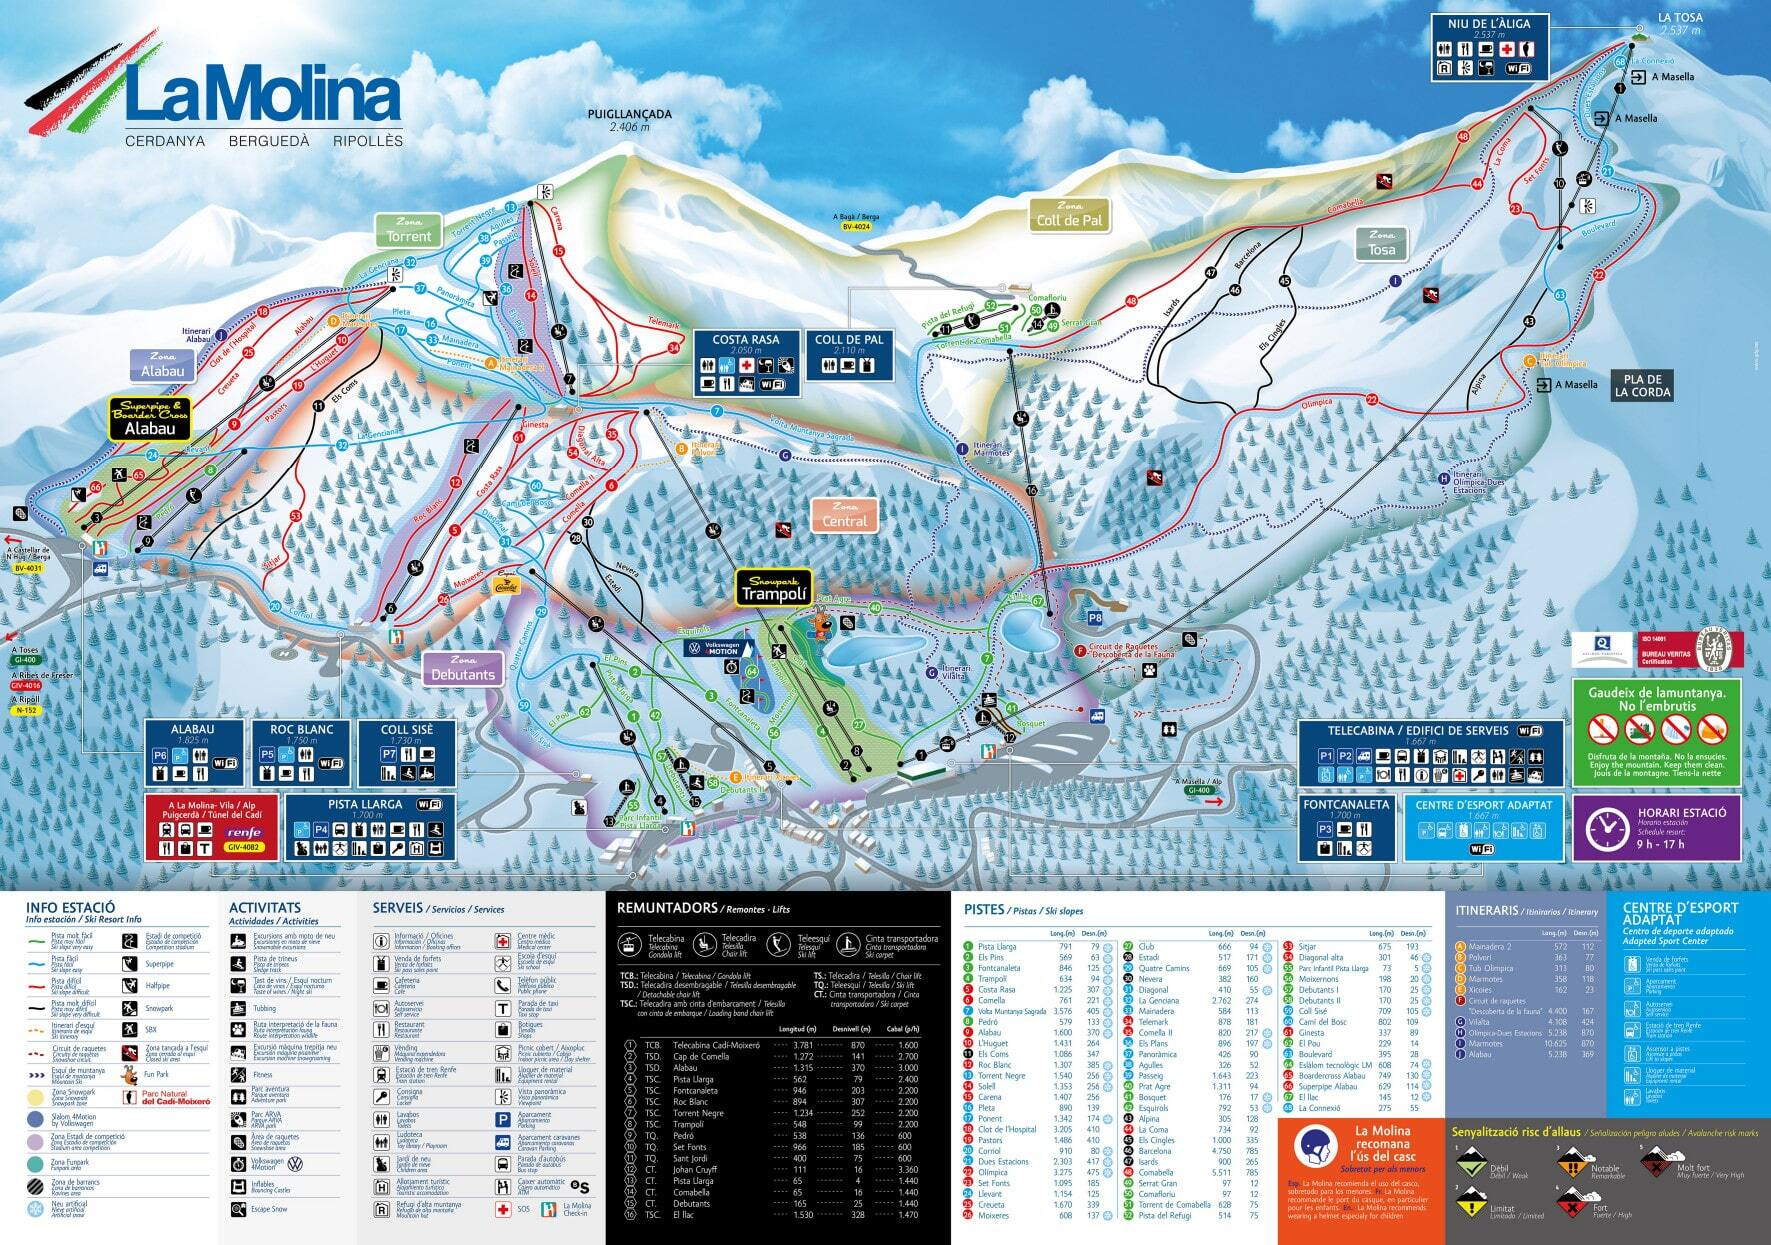 La Molina Piste / Trail Map